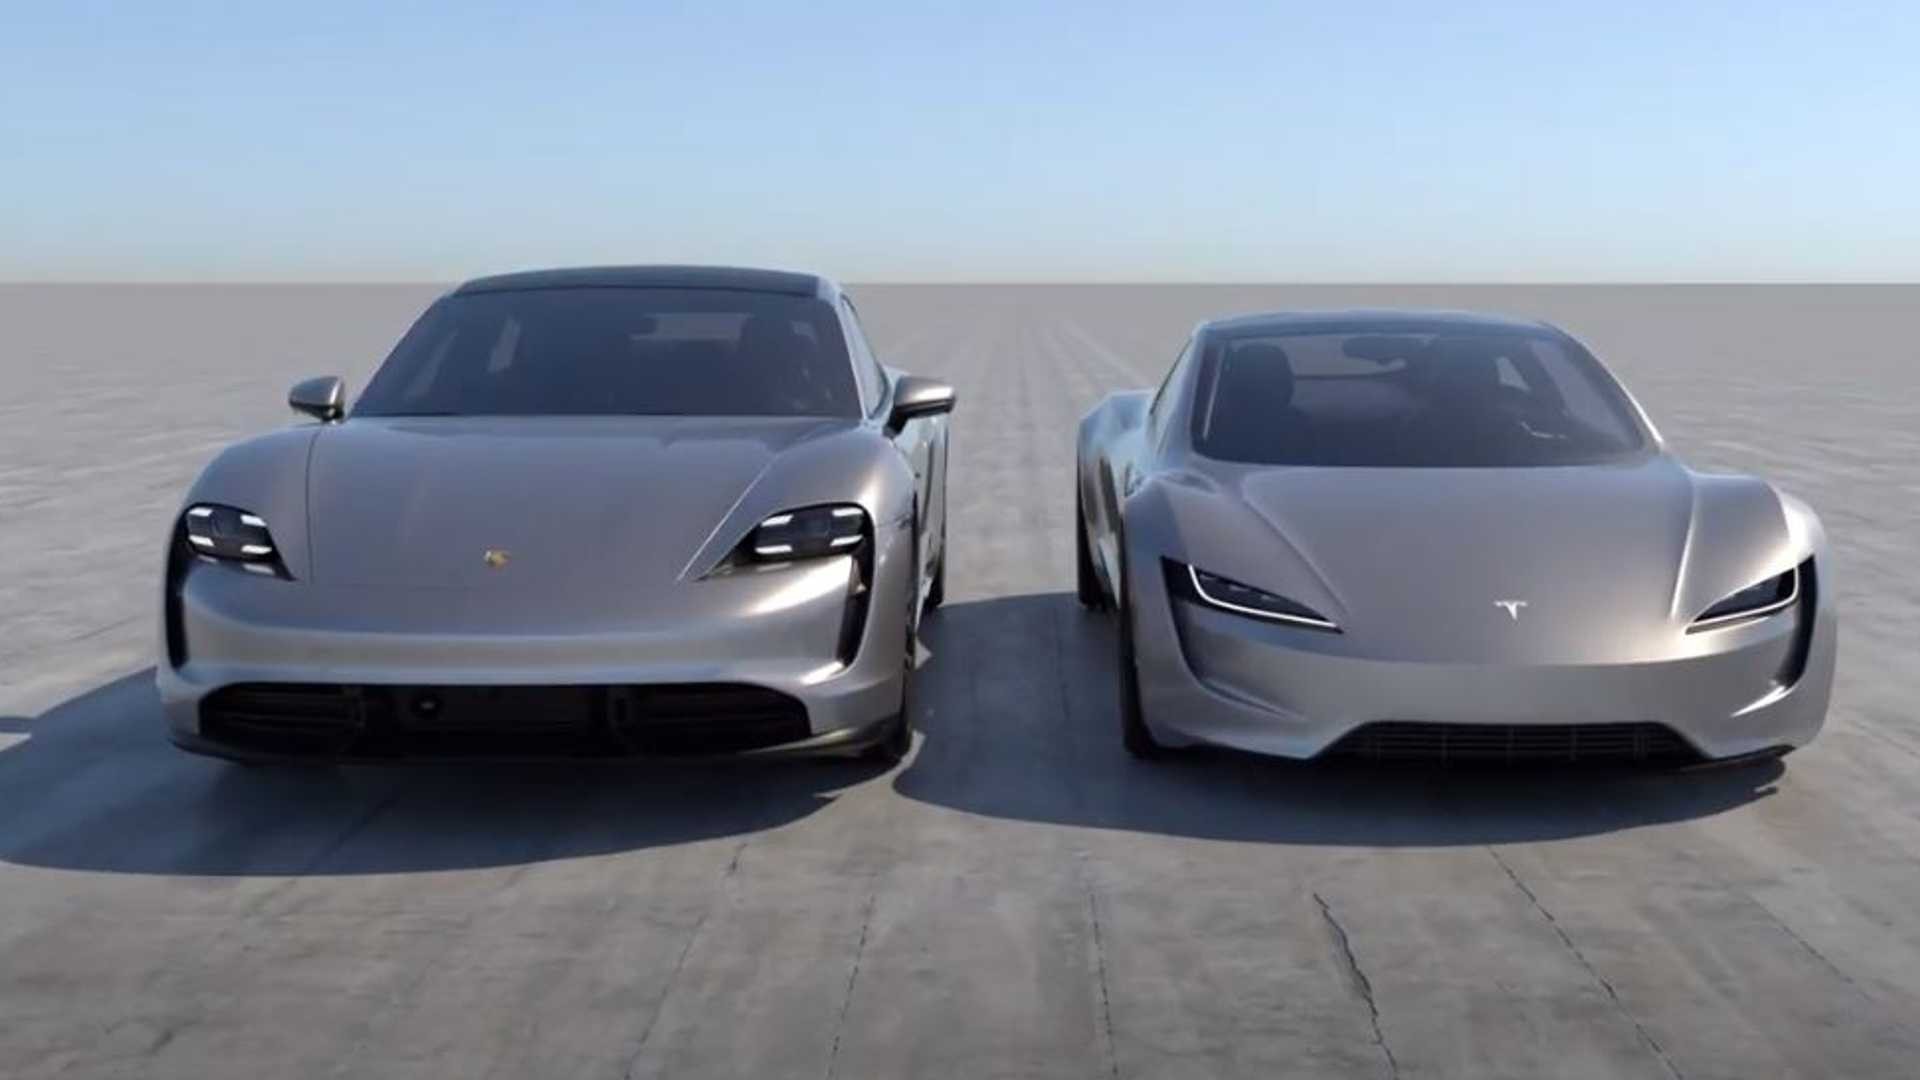 See New Tesla Roadster Next To Porsche Taycan Size Difference Is Huge